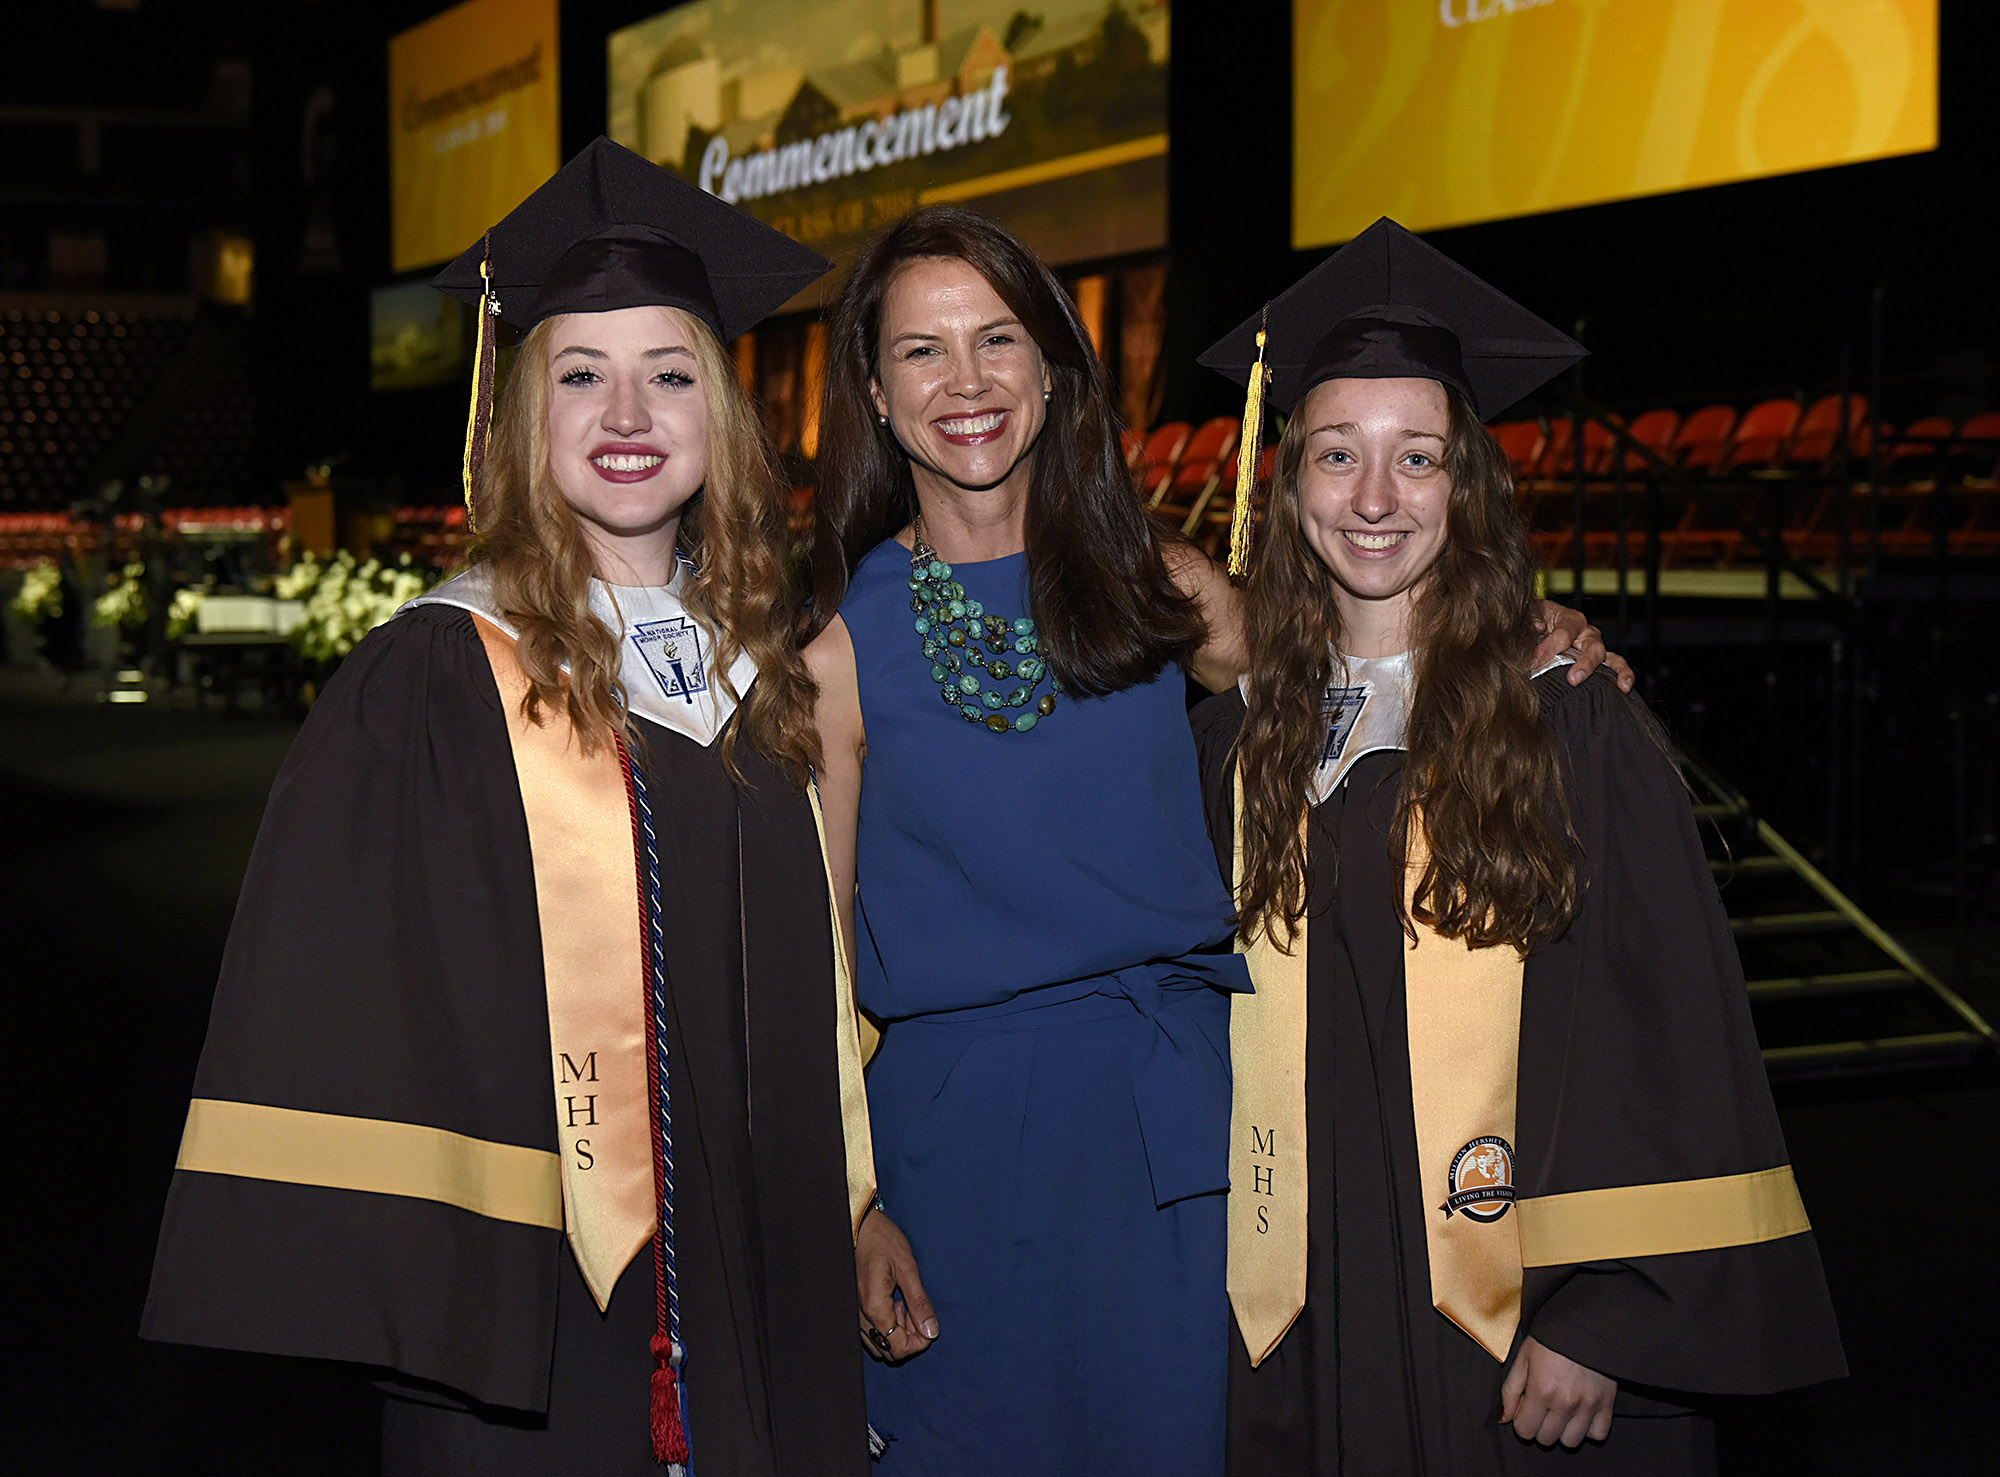 Alumna of the Year Wendy MacClinchy '92 poses with Valedictorian and Salutatorian before Commencement